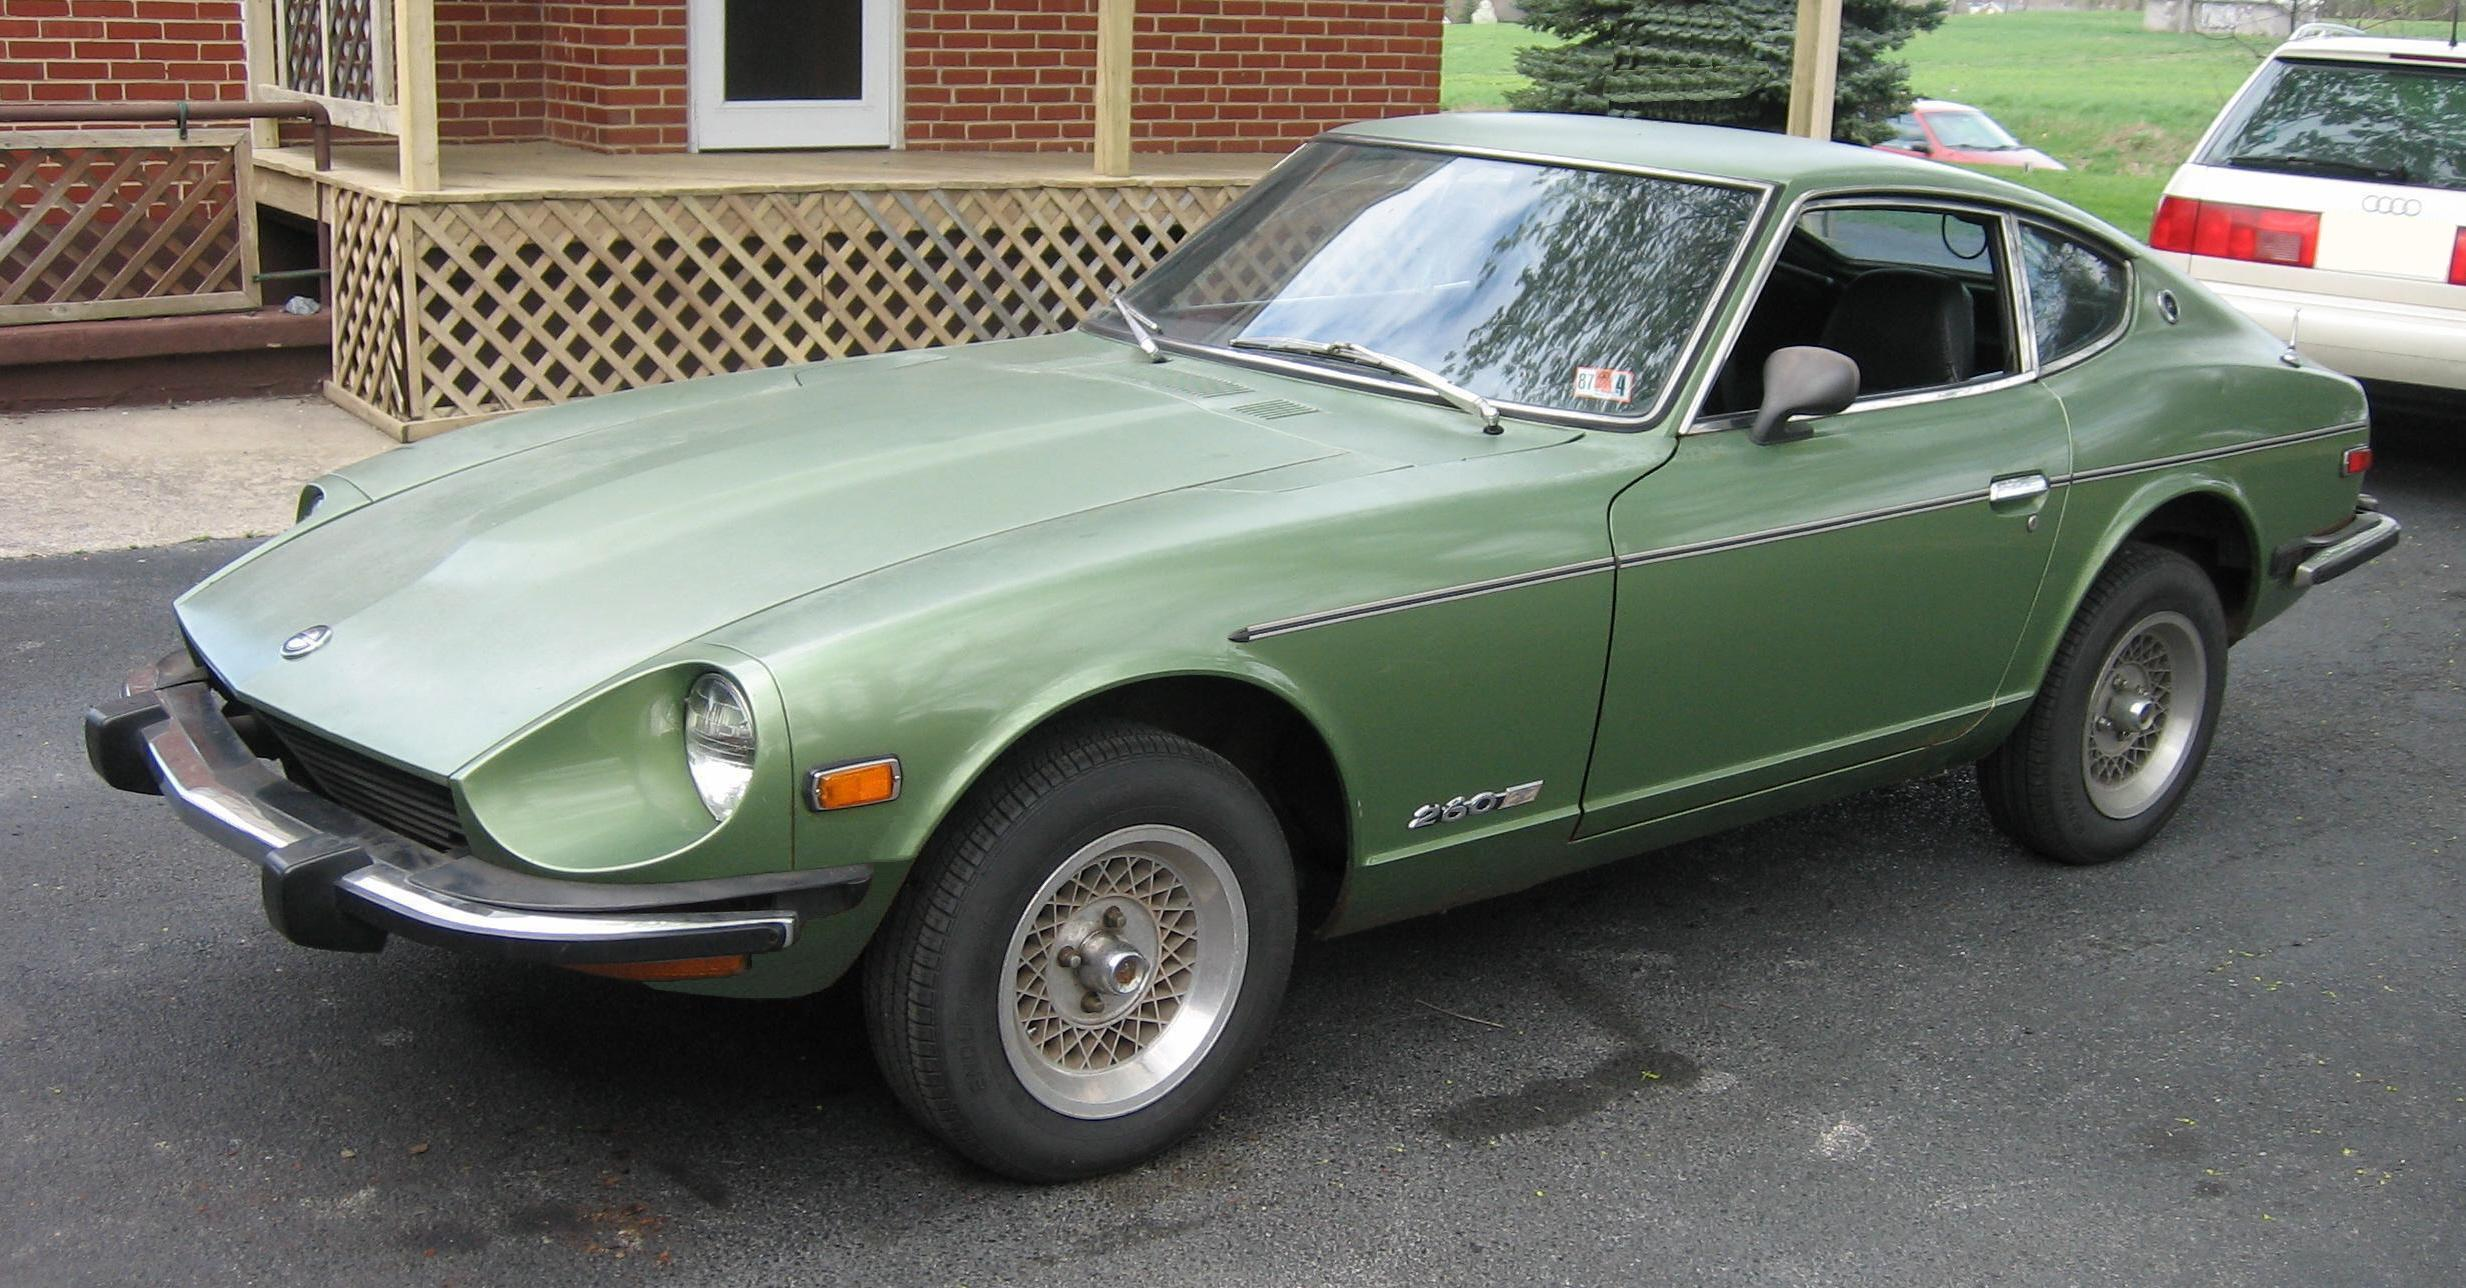 Nissan 240z Wikipedia >> File:260z.JPG - Wikimedia Commons